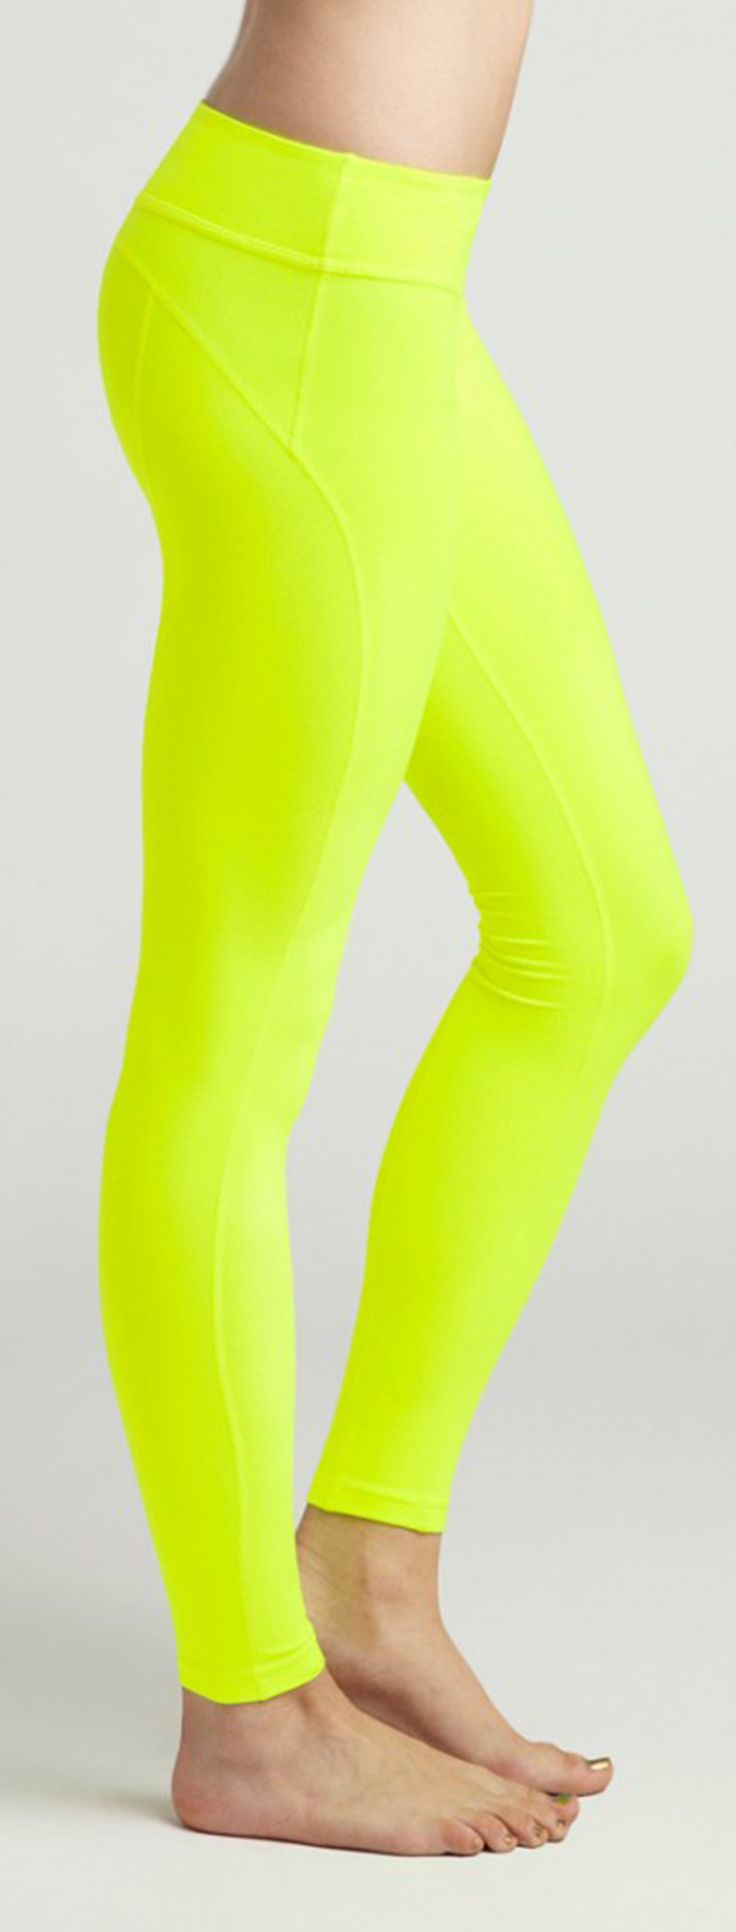 I found the NIKE PRO Capri ones yesterday! They are in the rotation for Wednesdays! What a bright day it will be!